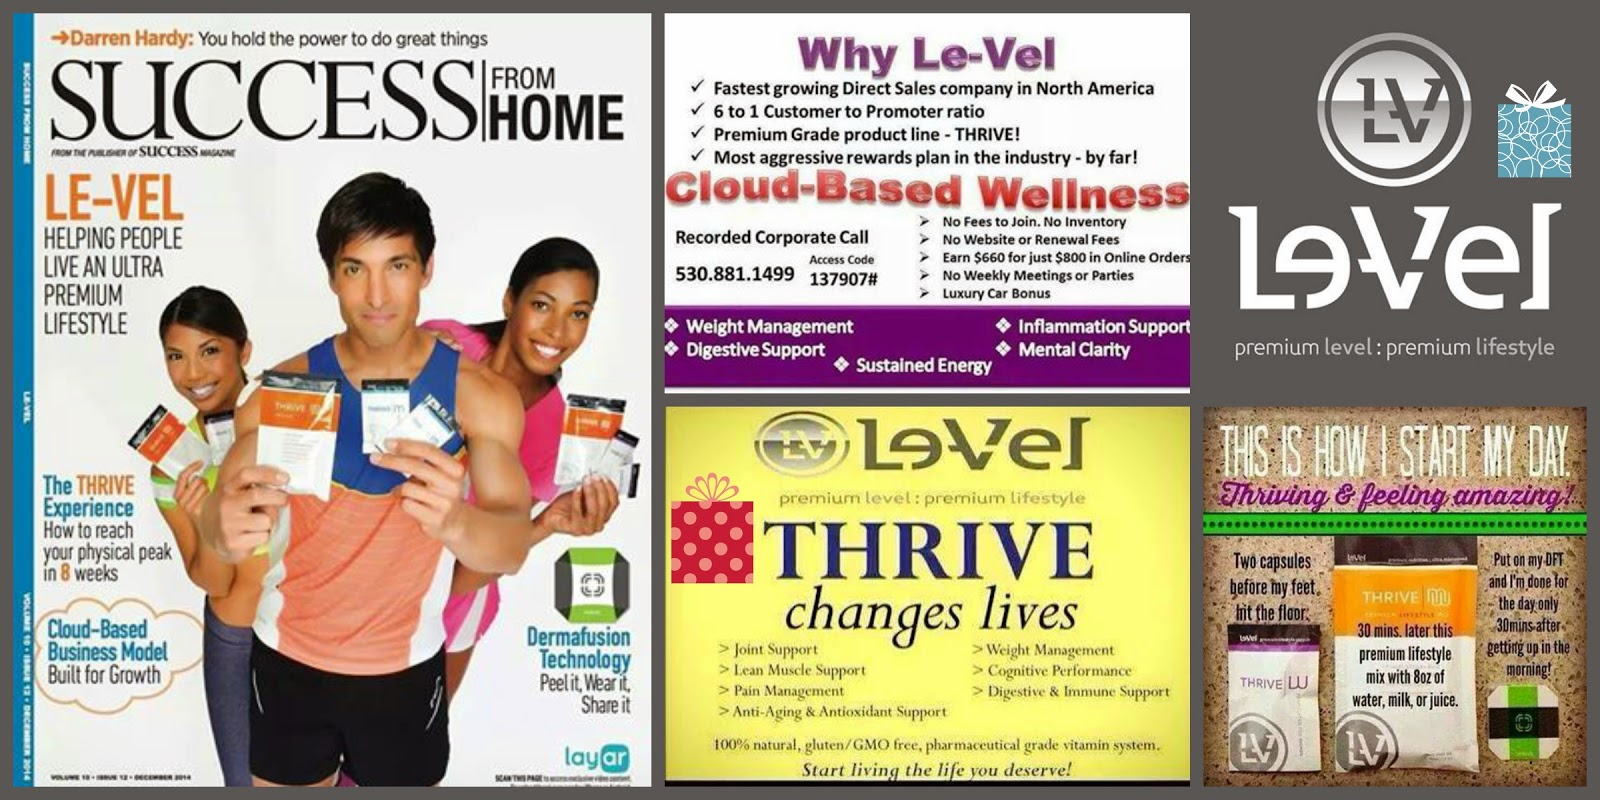 Does Level Thrive Products Contain Nicotine